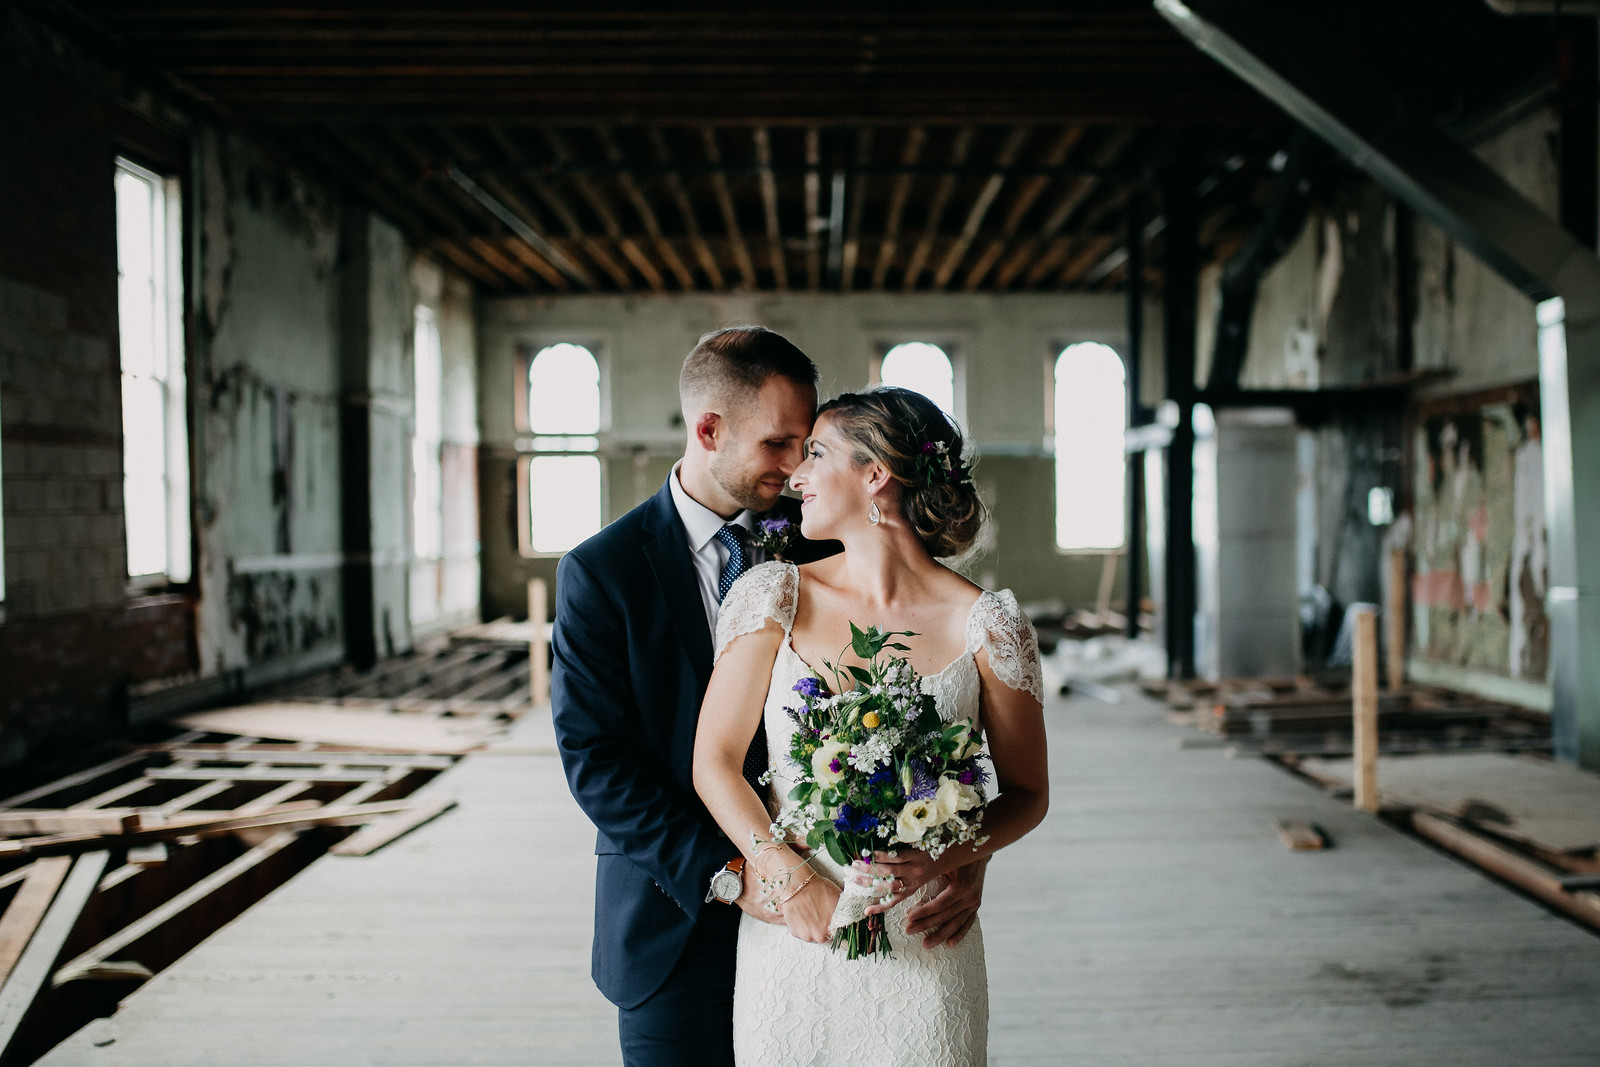 Your WEDDING DAY -